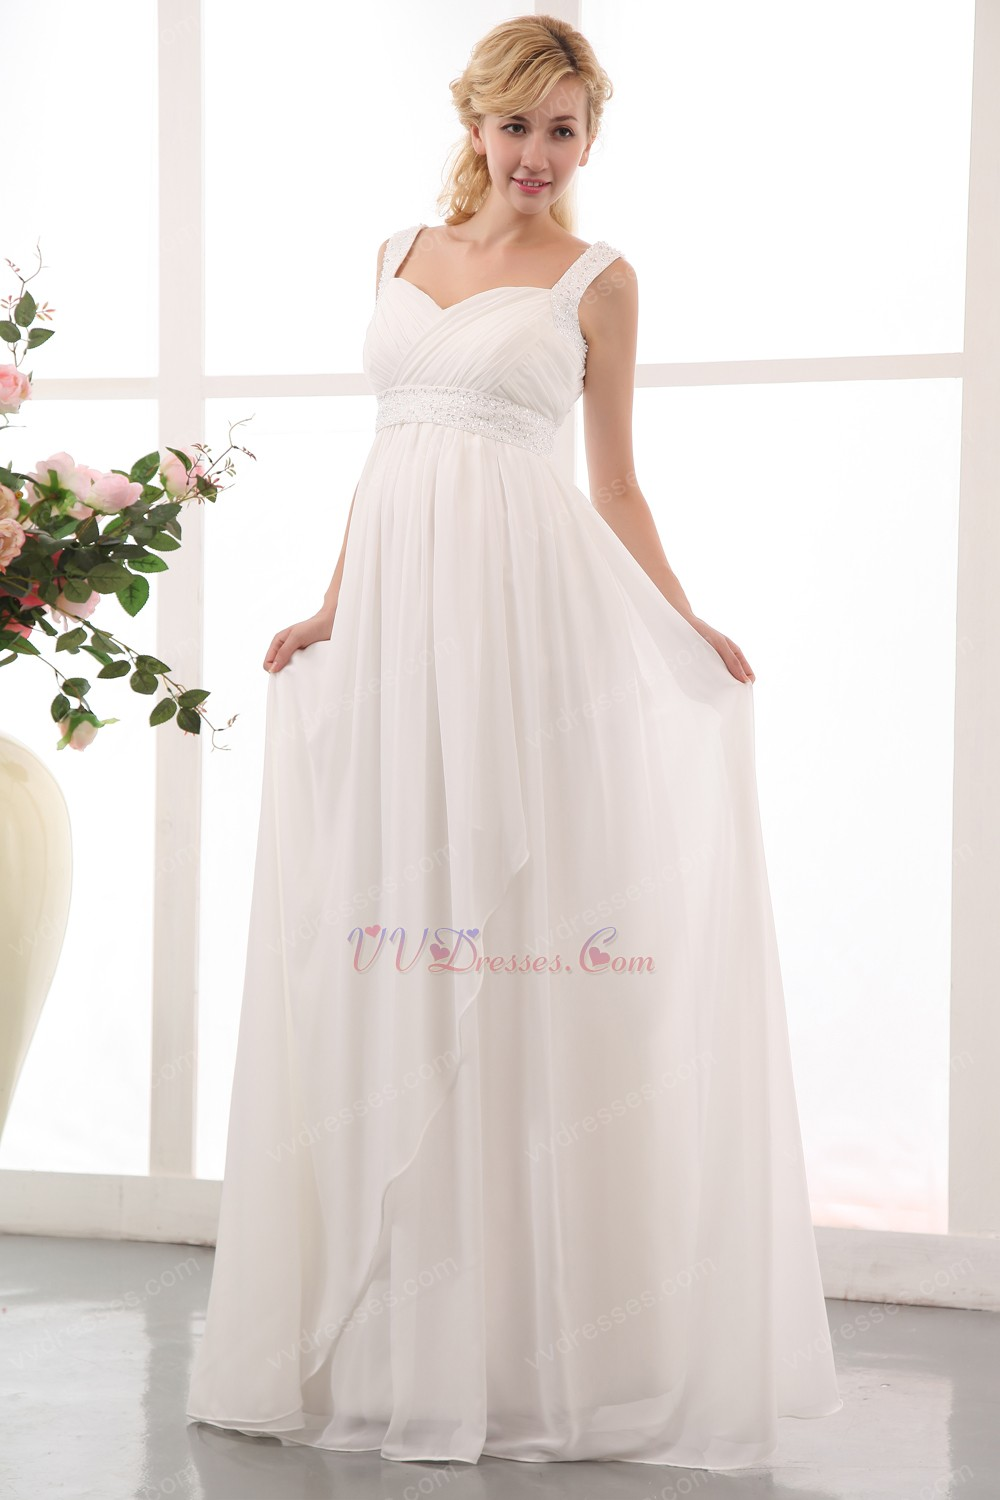 Ivory chiffon maternity dress for bride wear straps ivory chiffon maternity dress for bride wear ombrellifo Image collections